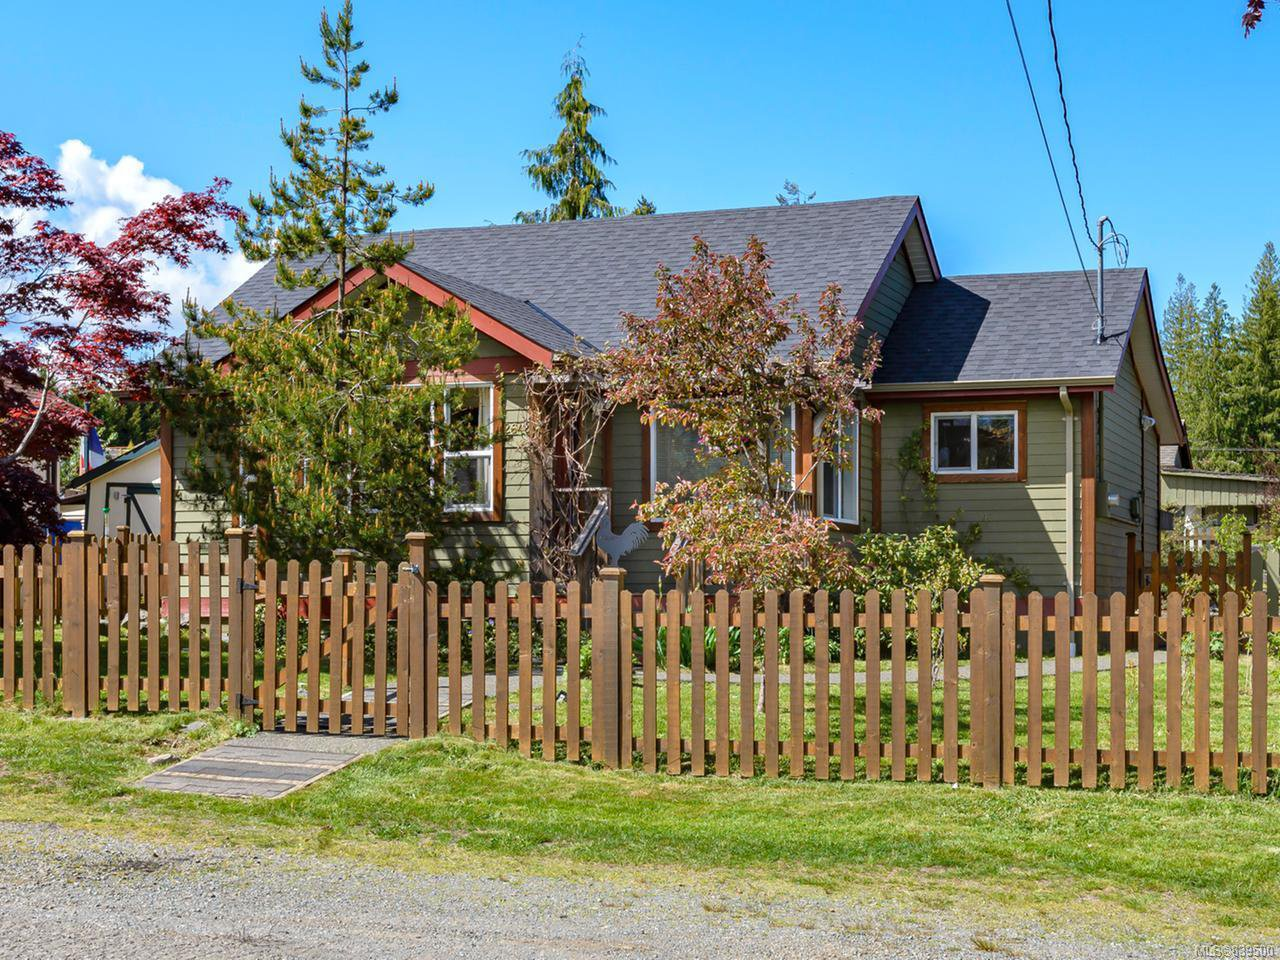 Main Photo: 2642 Maryport Ave in CUMBERLAND: CV Cumberland House for sale (Comox Valley)  : MLS®# 839500